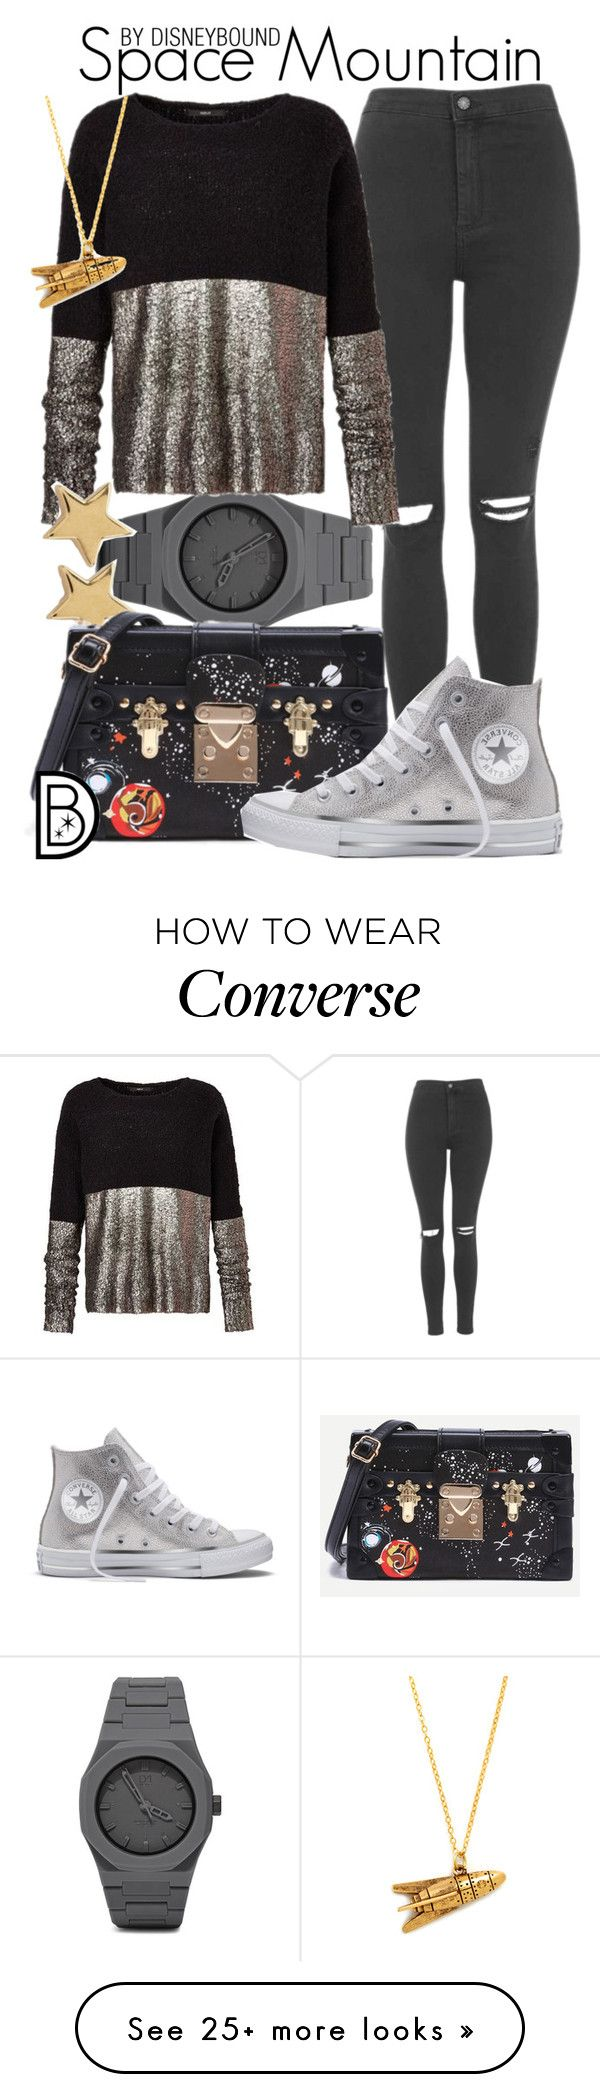 """Space Mountain"" by leslieakay on Polyvore featuring CC, Missoma, Topshop, Converse, disney, disneybound and disneycharacter"